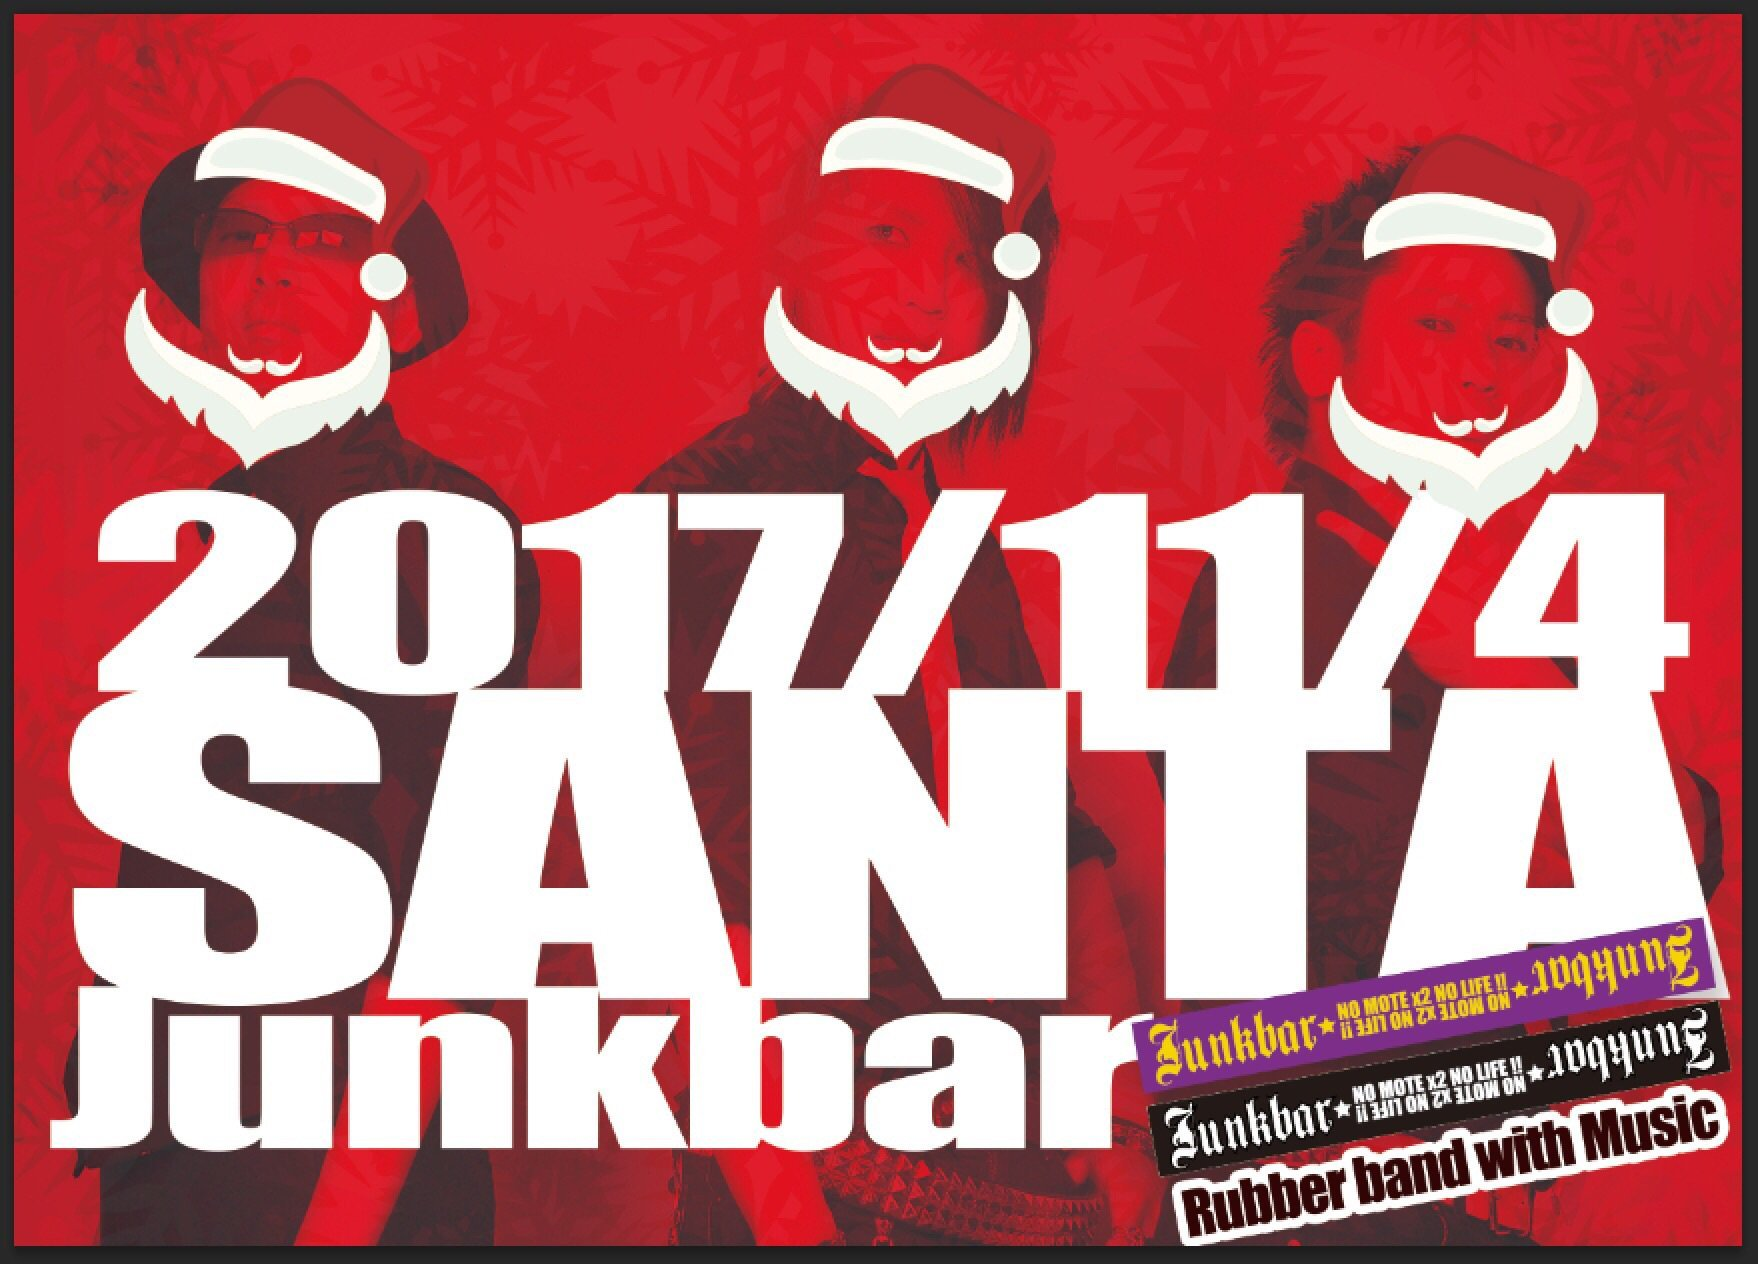 Junkbar / SANTA with Rubber band